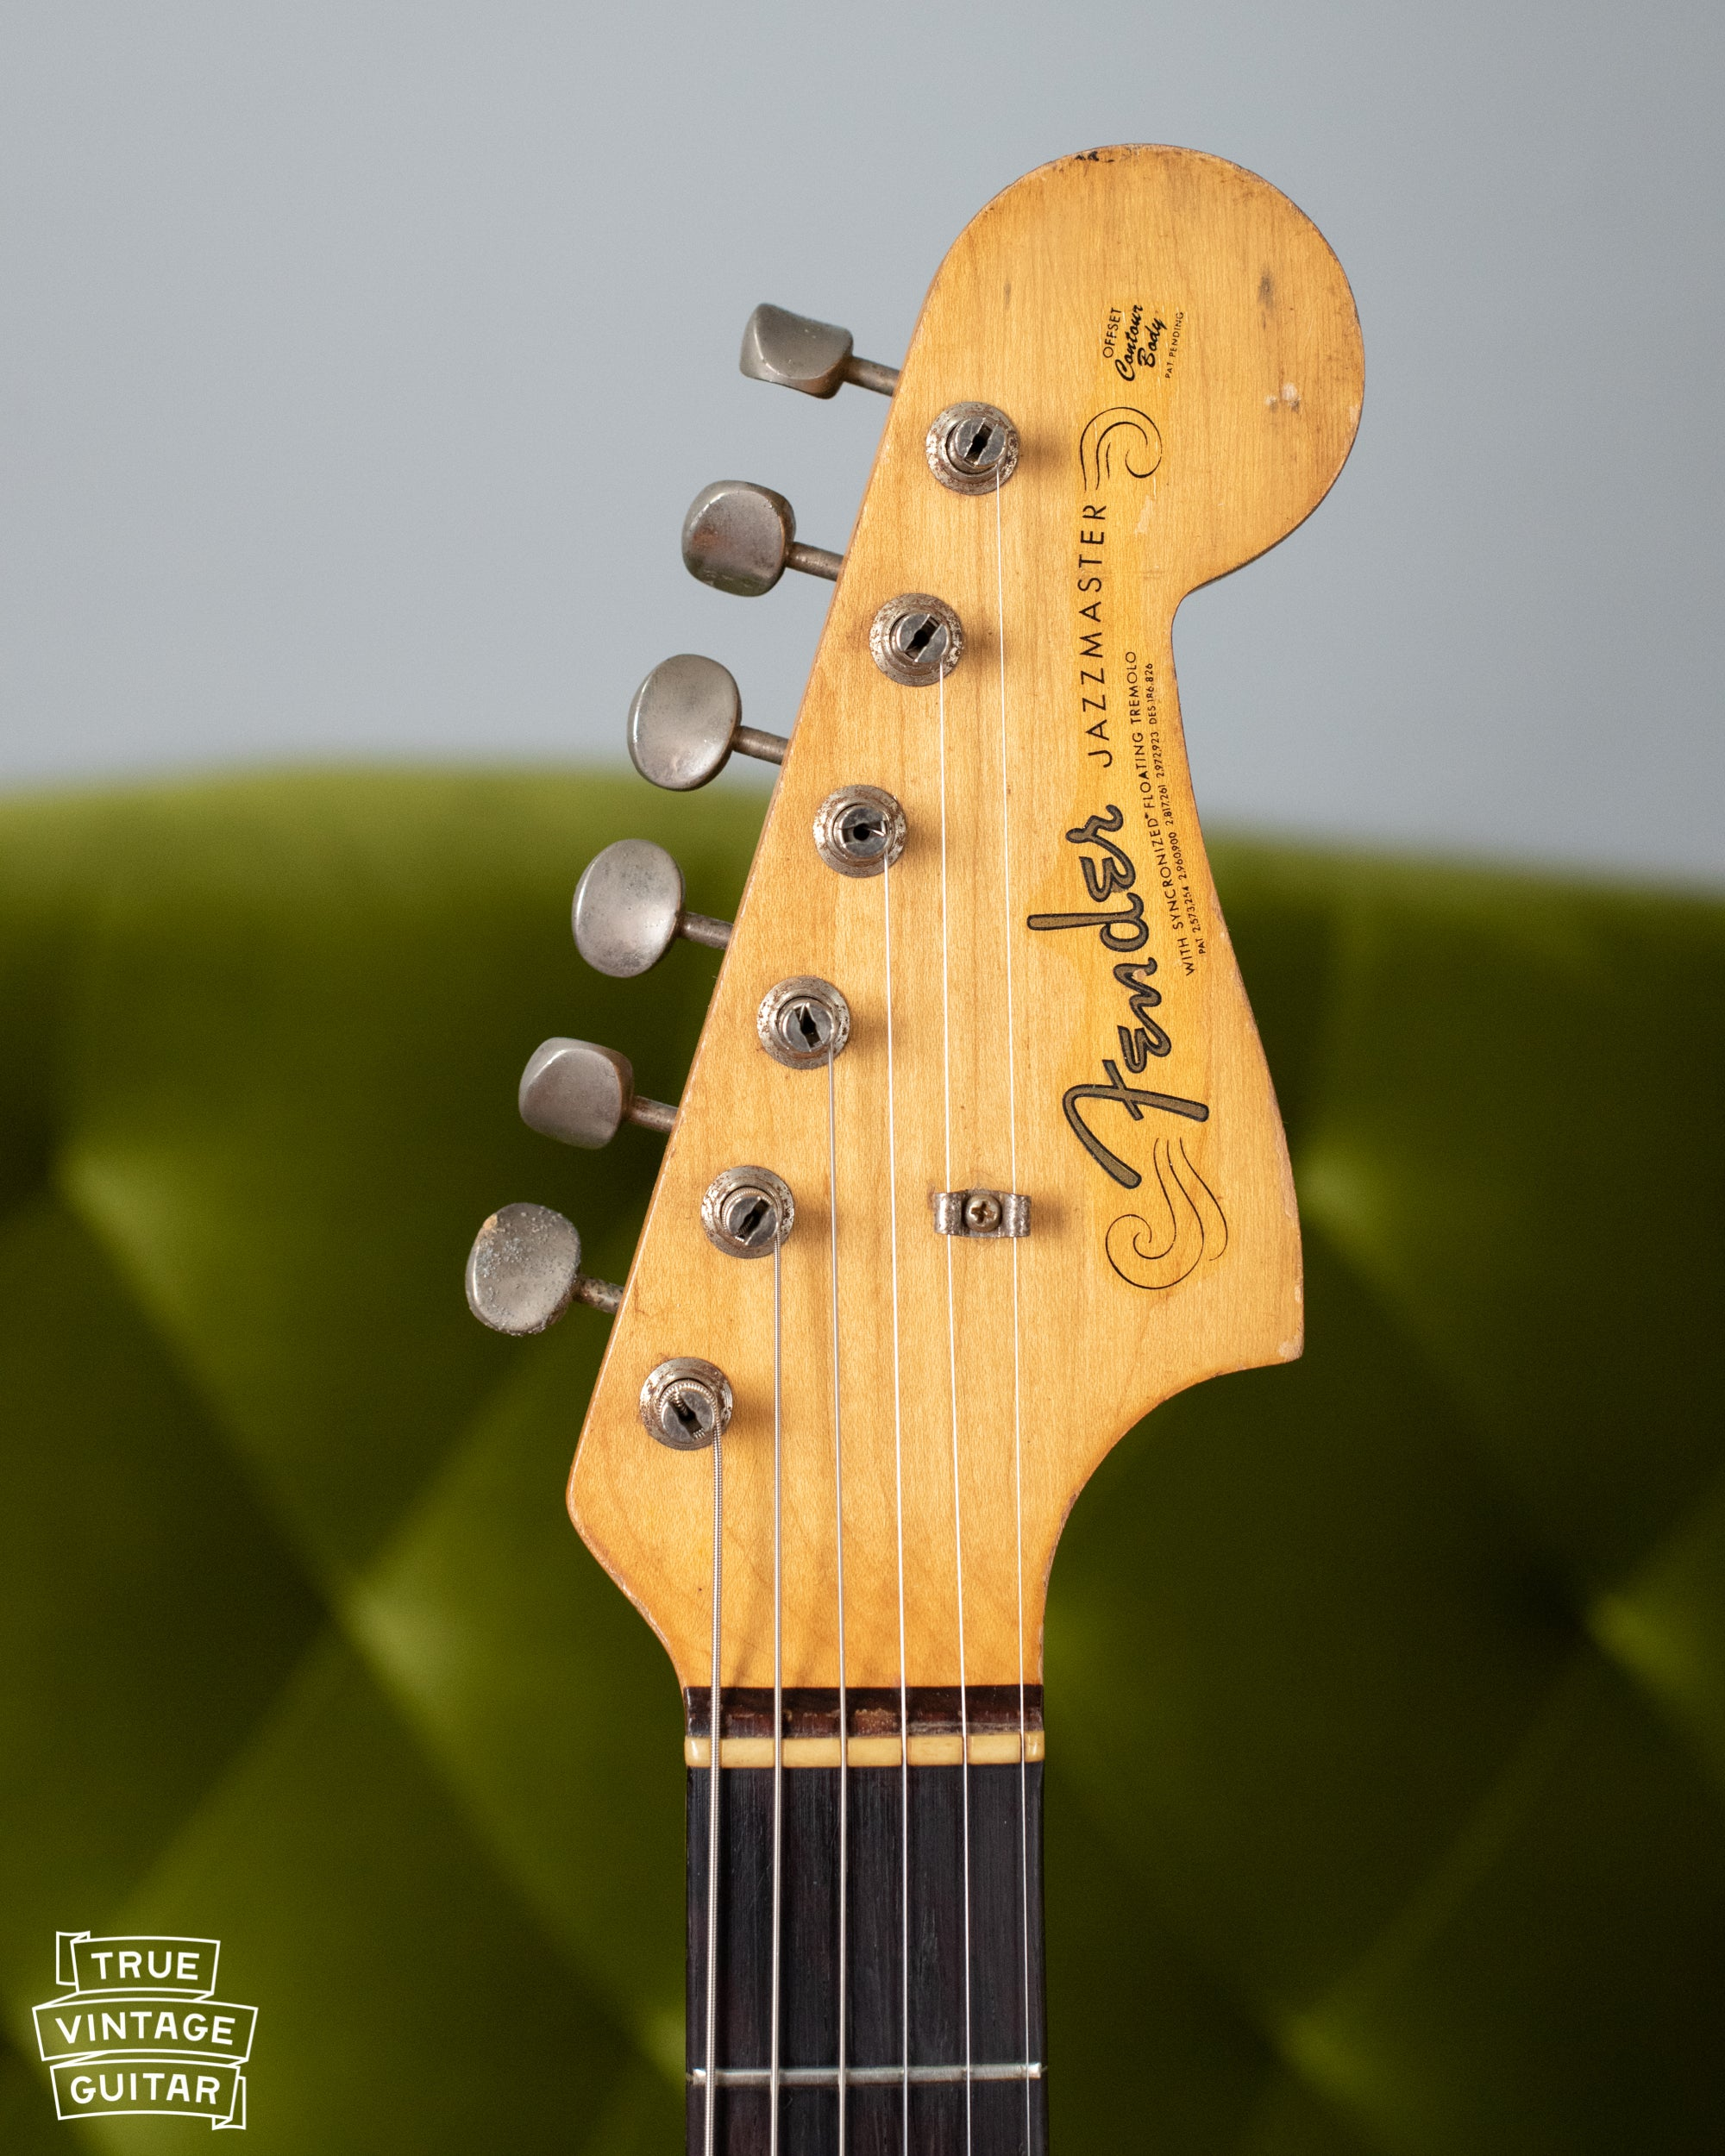 1963 Fender Jazzmaster neck headstock